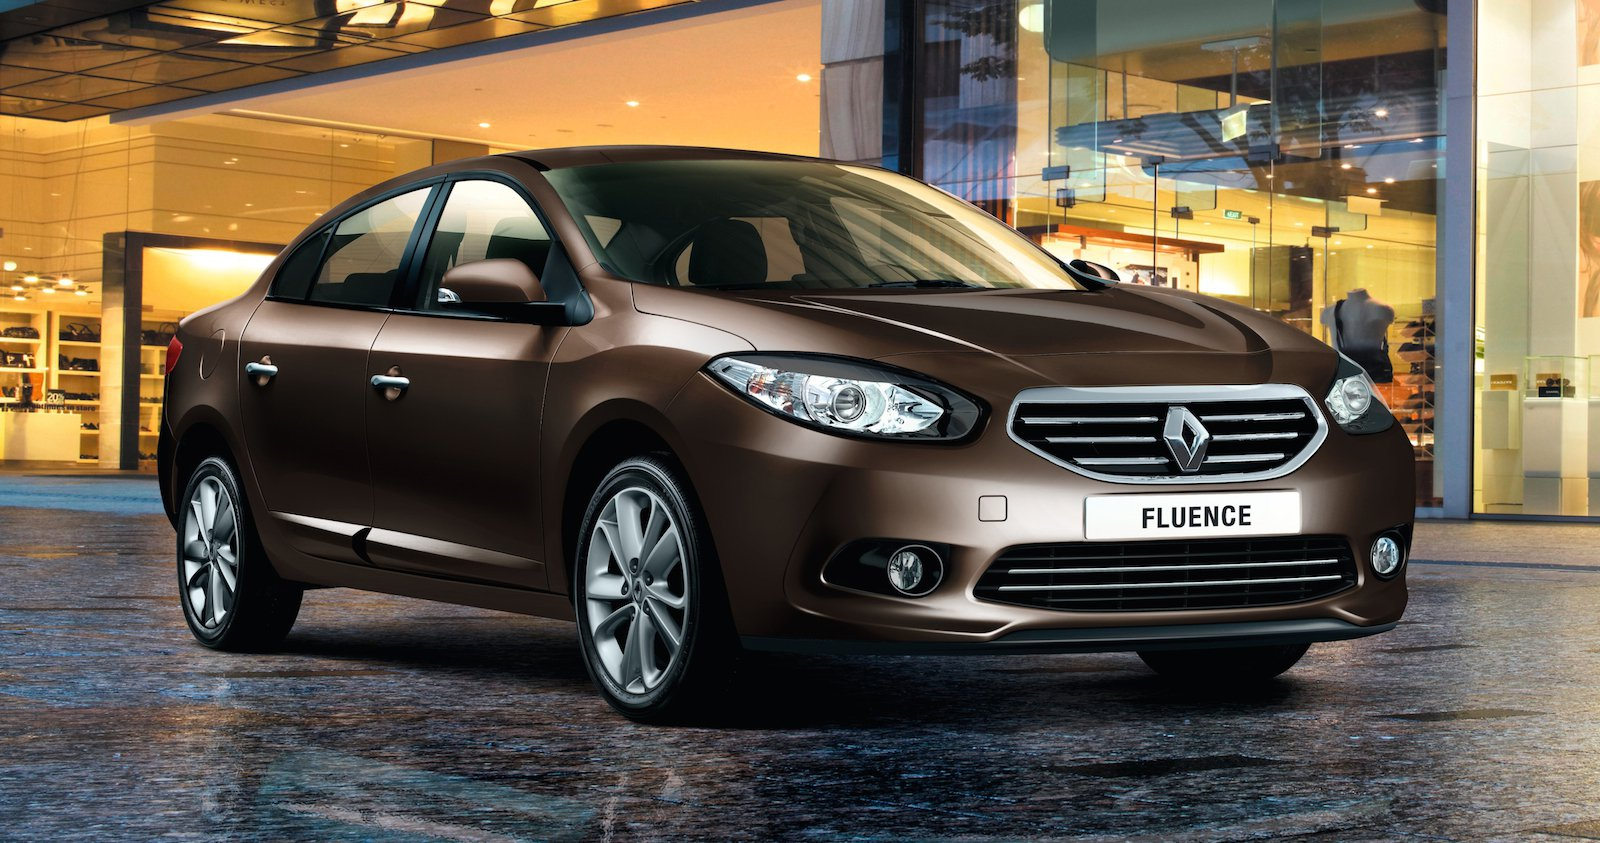 Renault fluence photo - 1